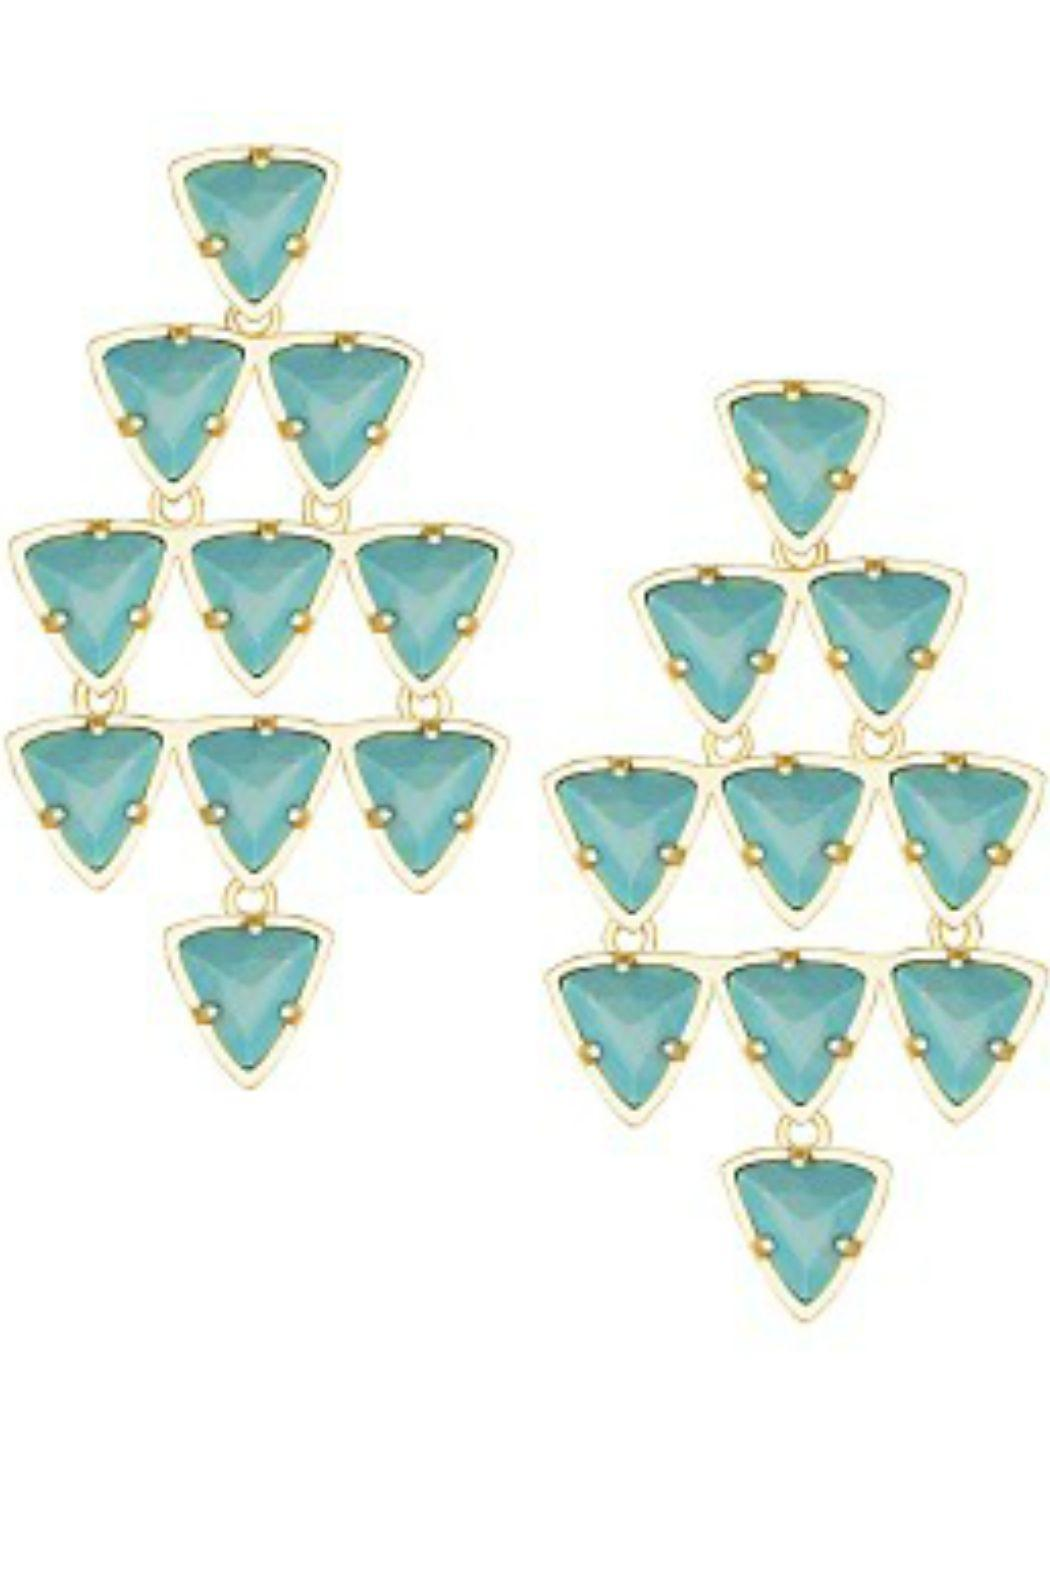 Kendra scott vale chandelier earrings from atlanta by collage kendra scott vale chandelier earrings front cropped image arubaitofo Images